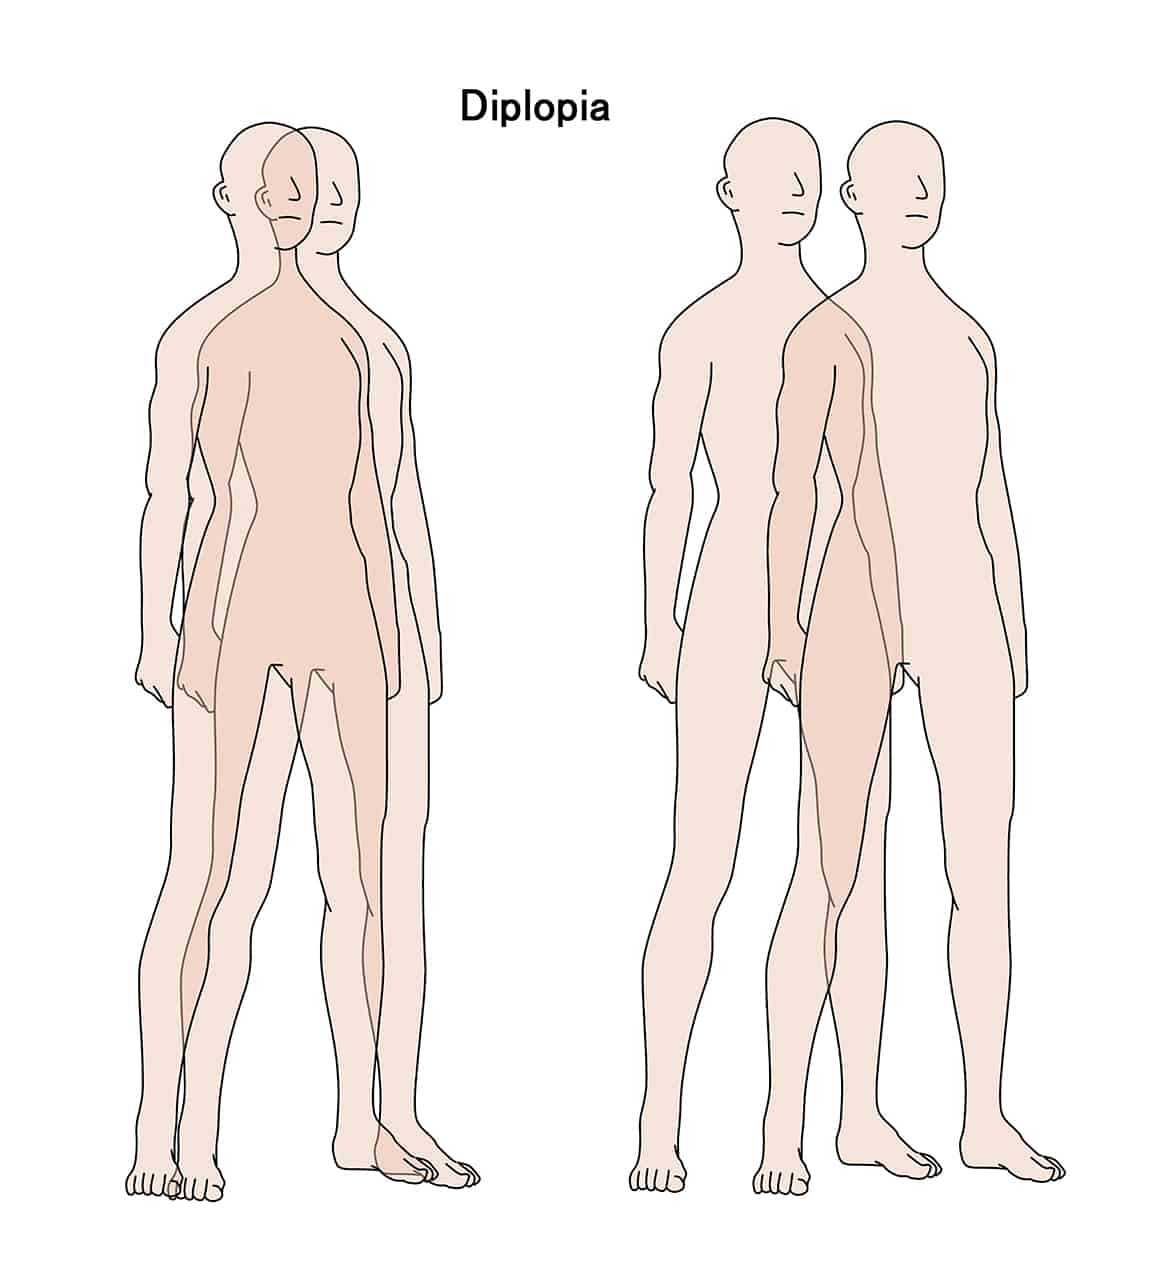 Double Vision Diplopia